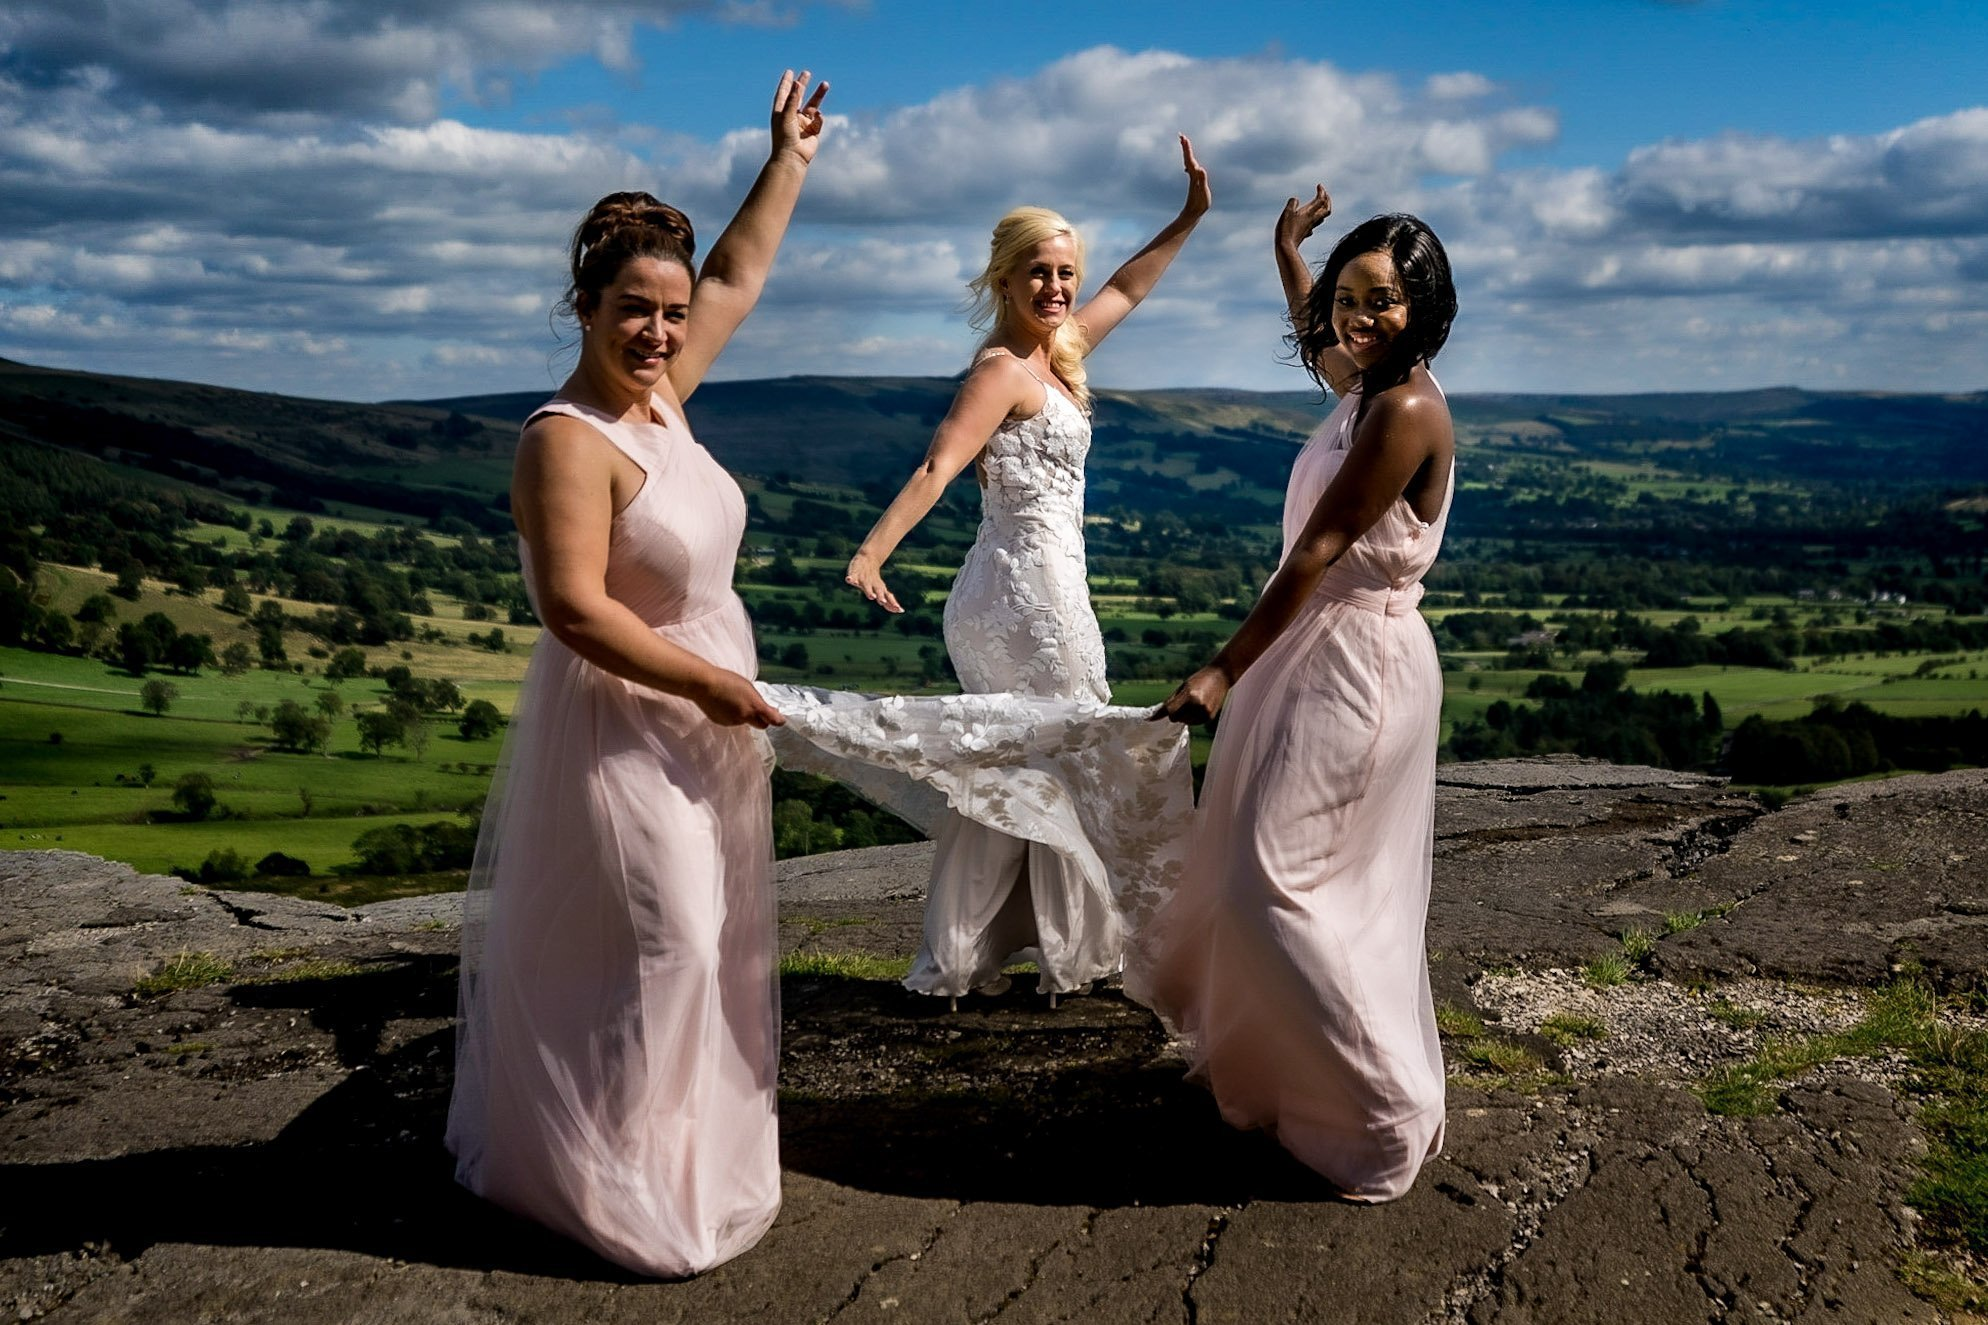 YFFUK Your Favourite Frame Mwasuku Peak District Castleton Mam Tor bride standing on the old cracked road with her bridesmaids holding the train of her dress blue skies and killer views